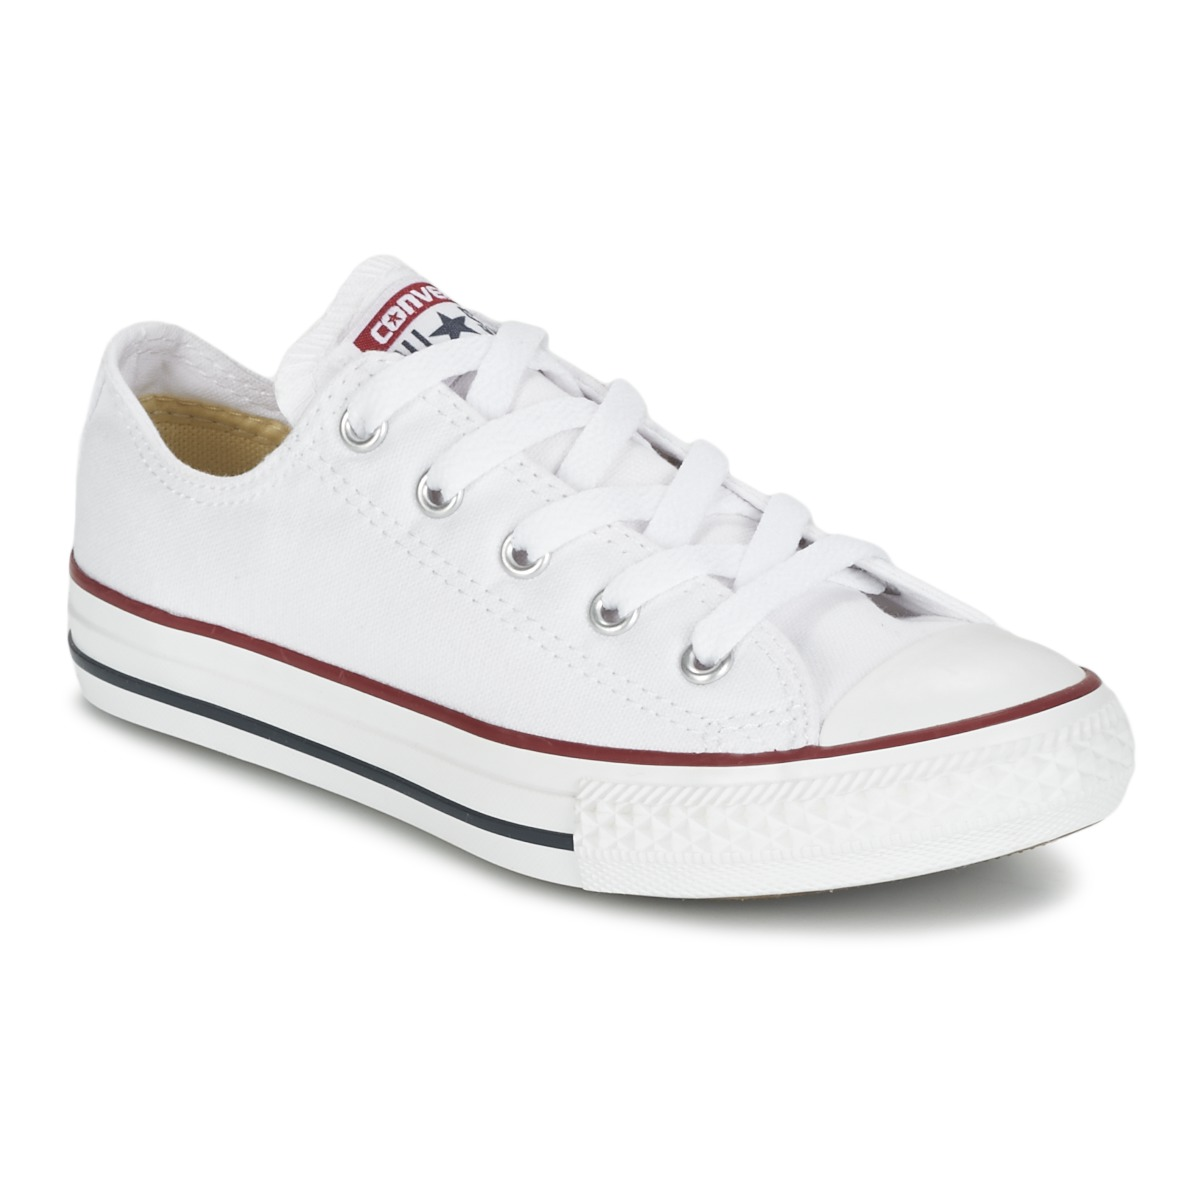 AtcenstockConverse AtcenstockConverse AtcenstockConverse Star All All Star 34A5RjLq